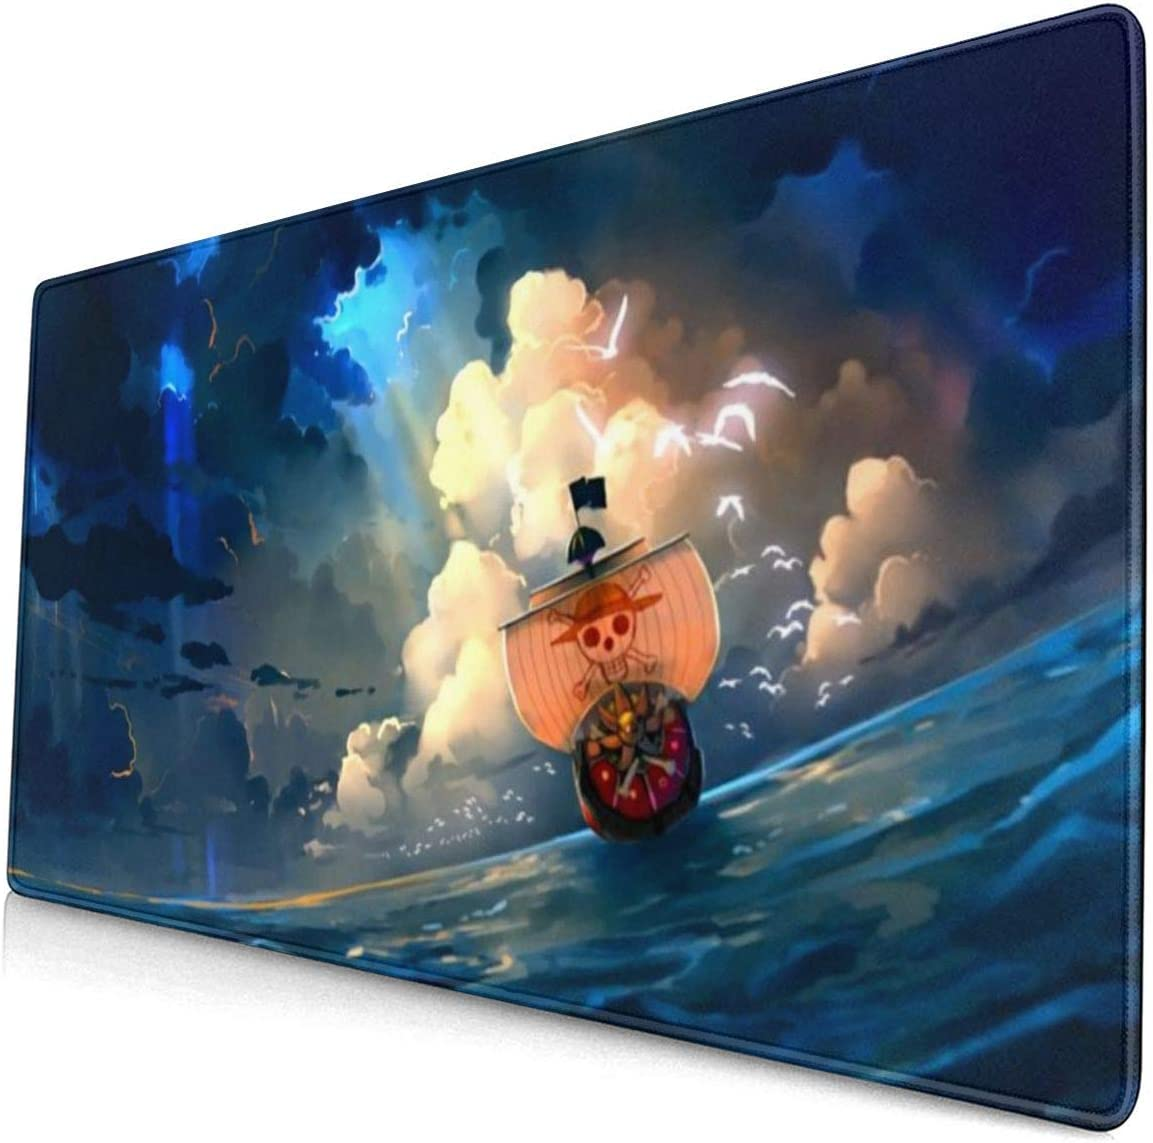 Anime One Piece Luffy Roronoa Zoro Nami Mouse Pad Laptop Computer Pc Non-Slip Rubber Base Stitched Edges Extended Gaming Large Mousepad Precision Hemming Office Home Gamer 15.8X29.5in